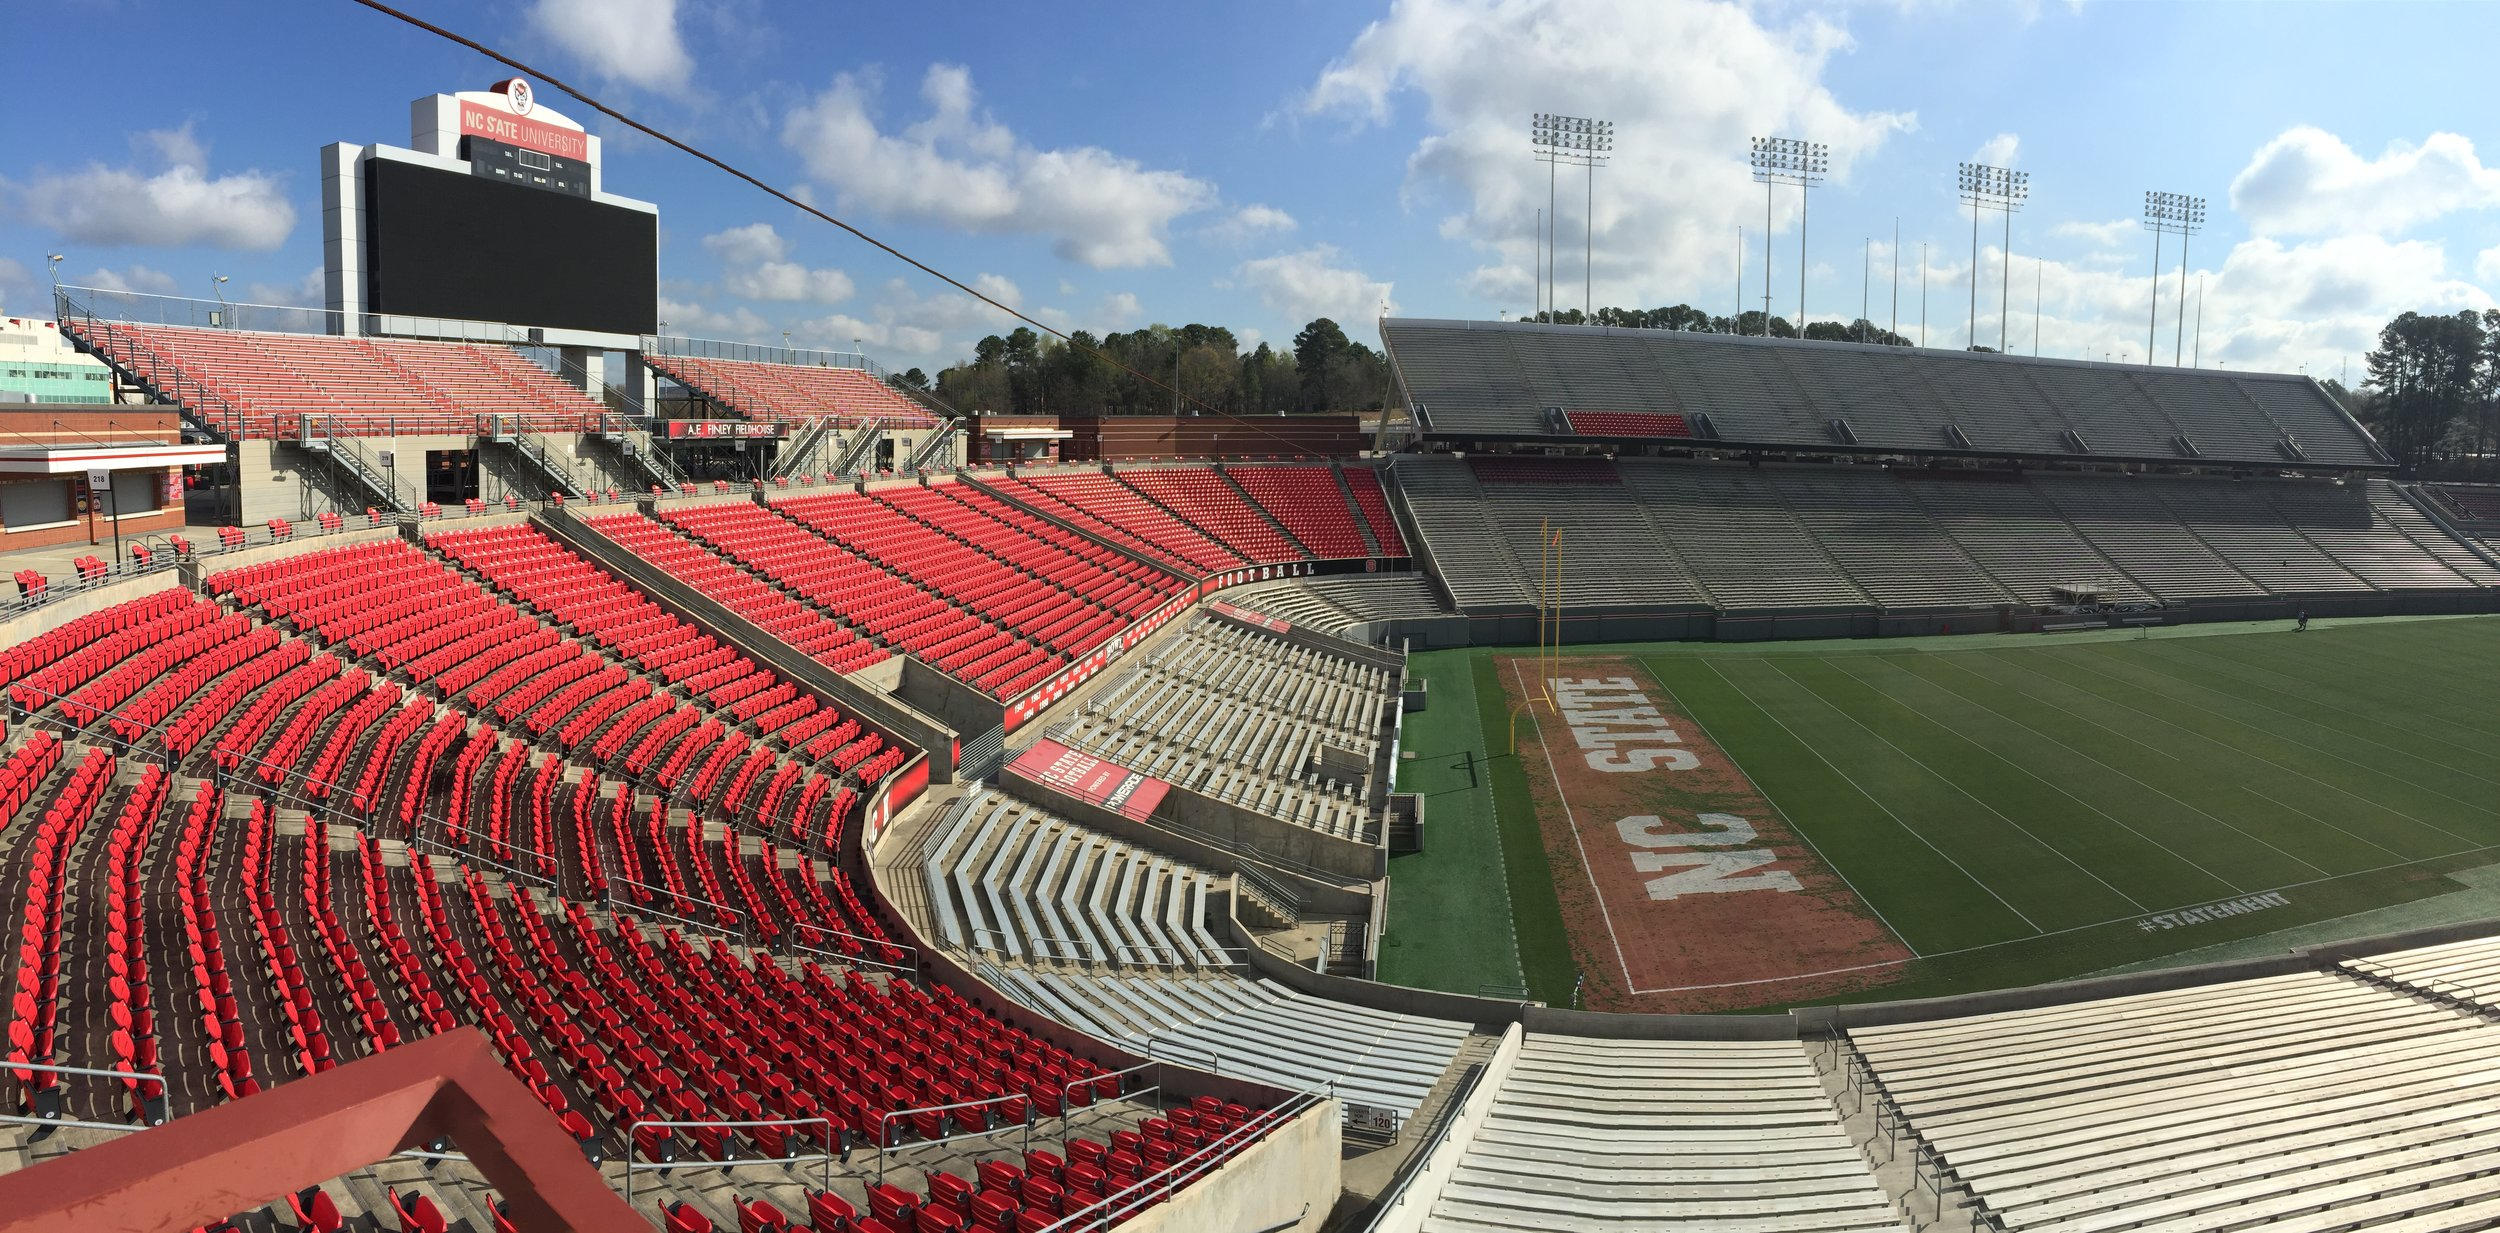 NC State Football Stadium across the street from the Fairgournds